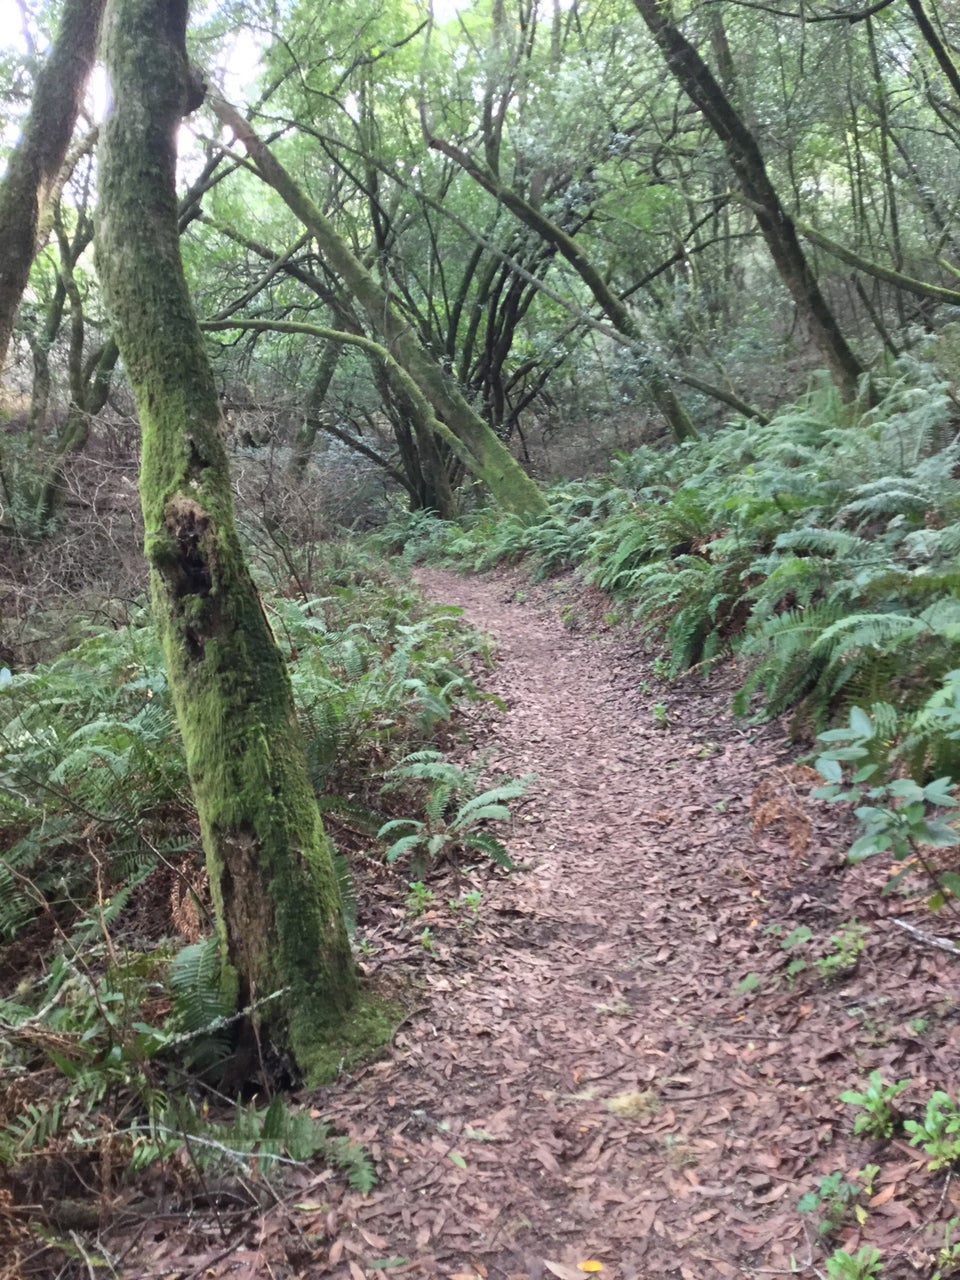 Smooth brown trail with ferns on either side, trees with their sides bright green with moss.